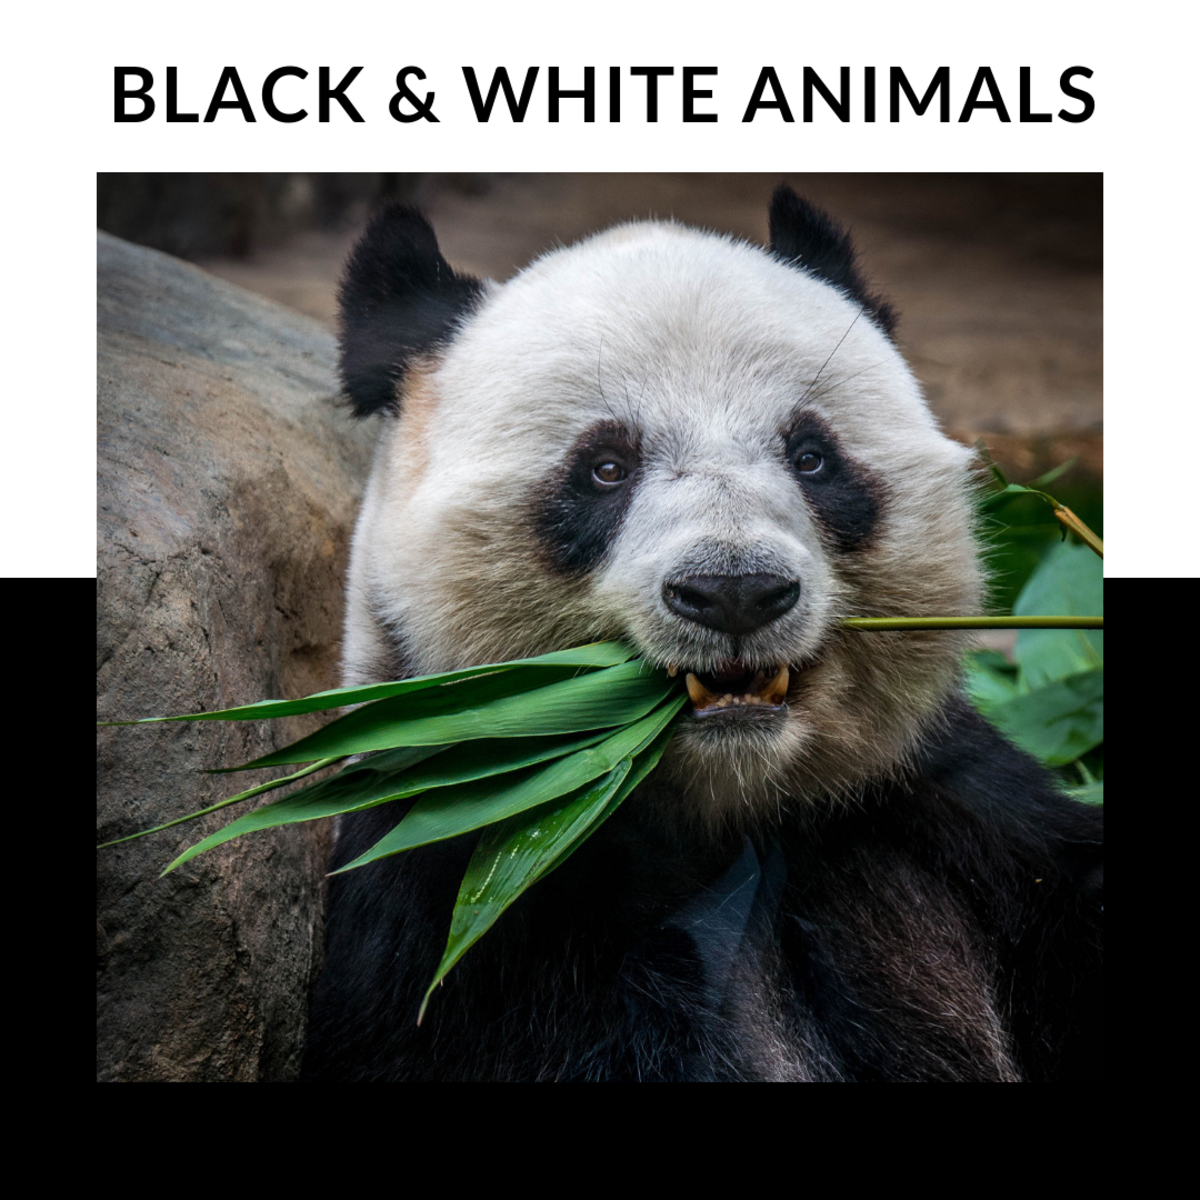 20 Black and White Animals: Names and Pictures